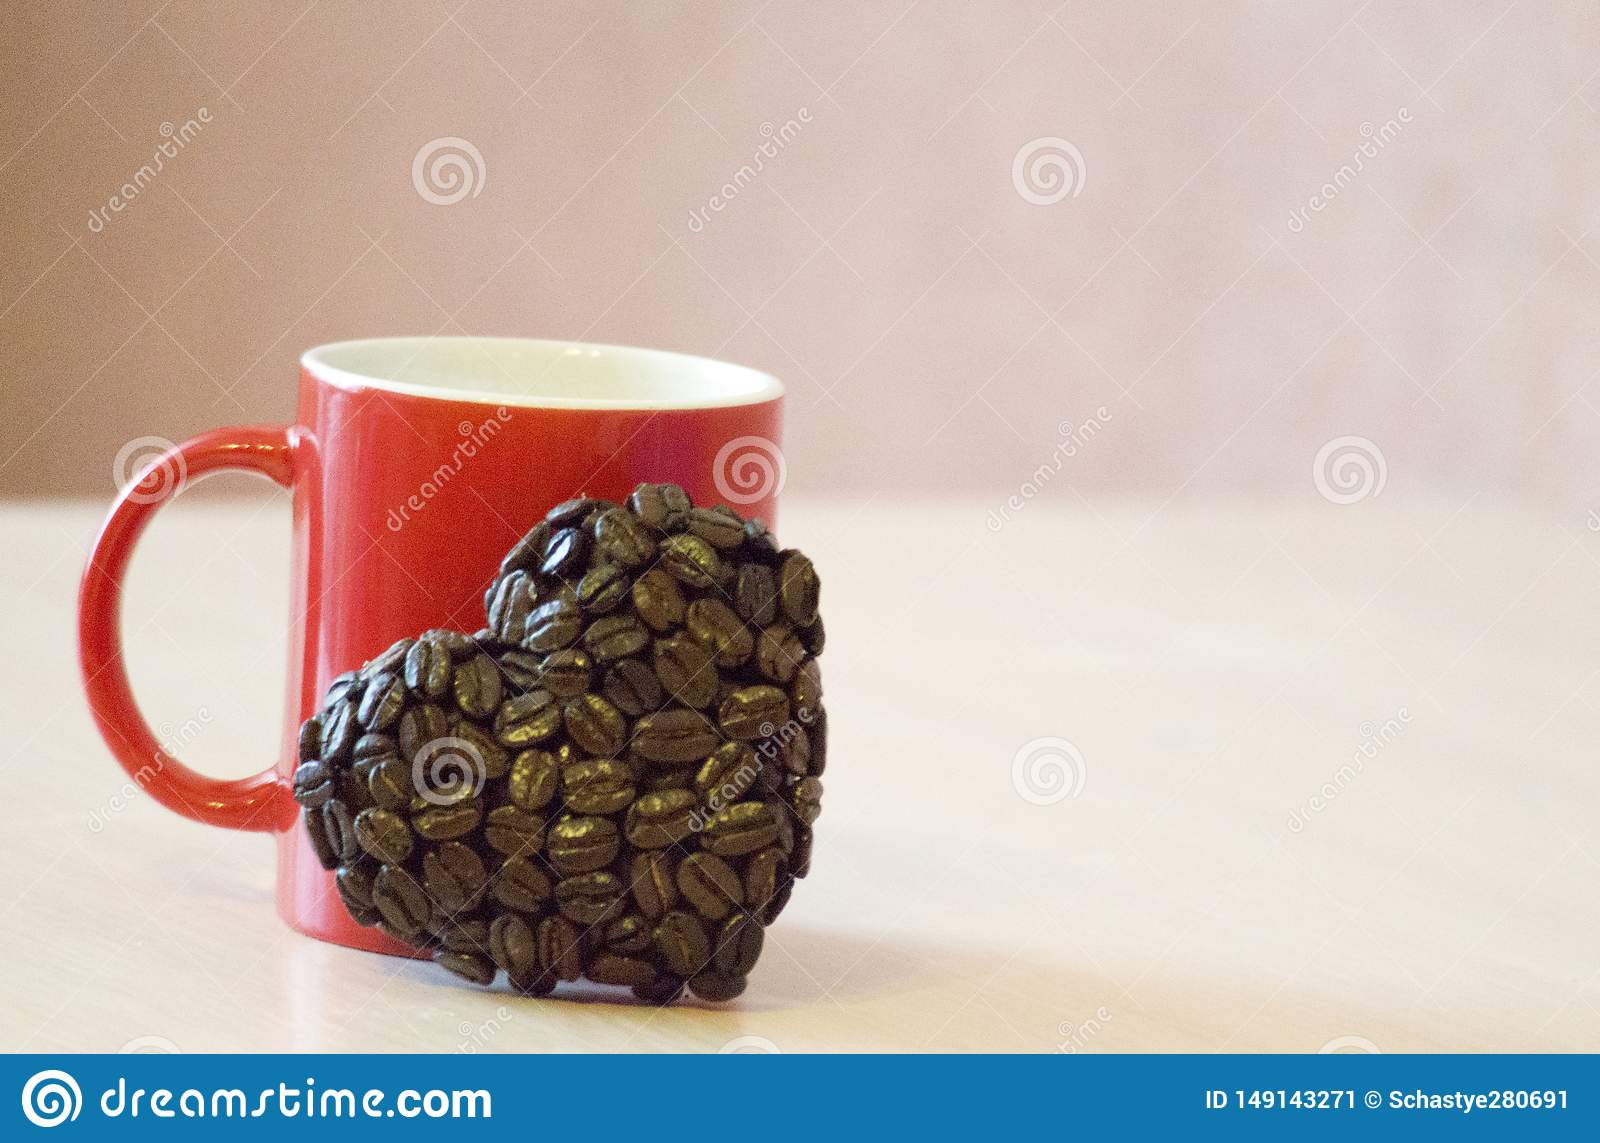 Red mug stands on the table, near the mug the heart shape of coffee beans, a symbol of love